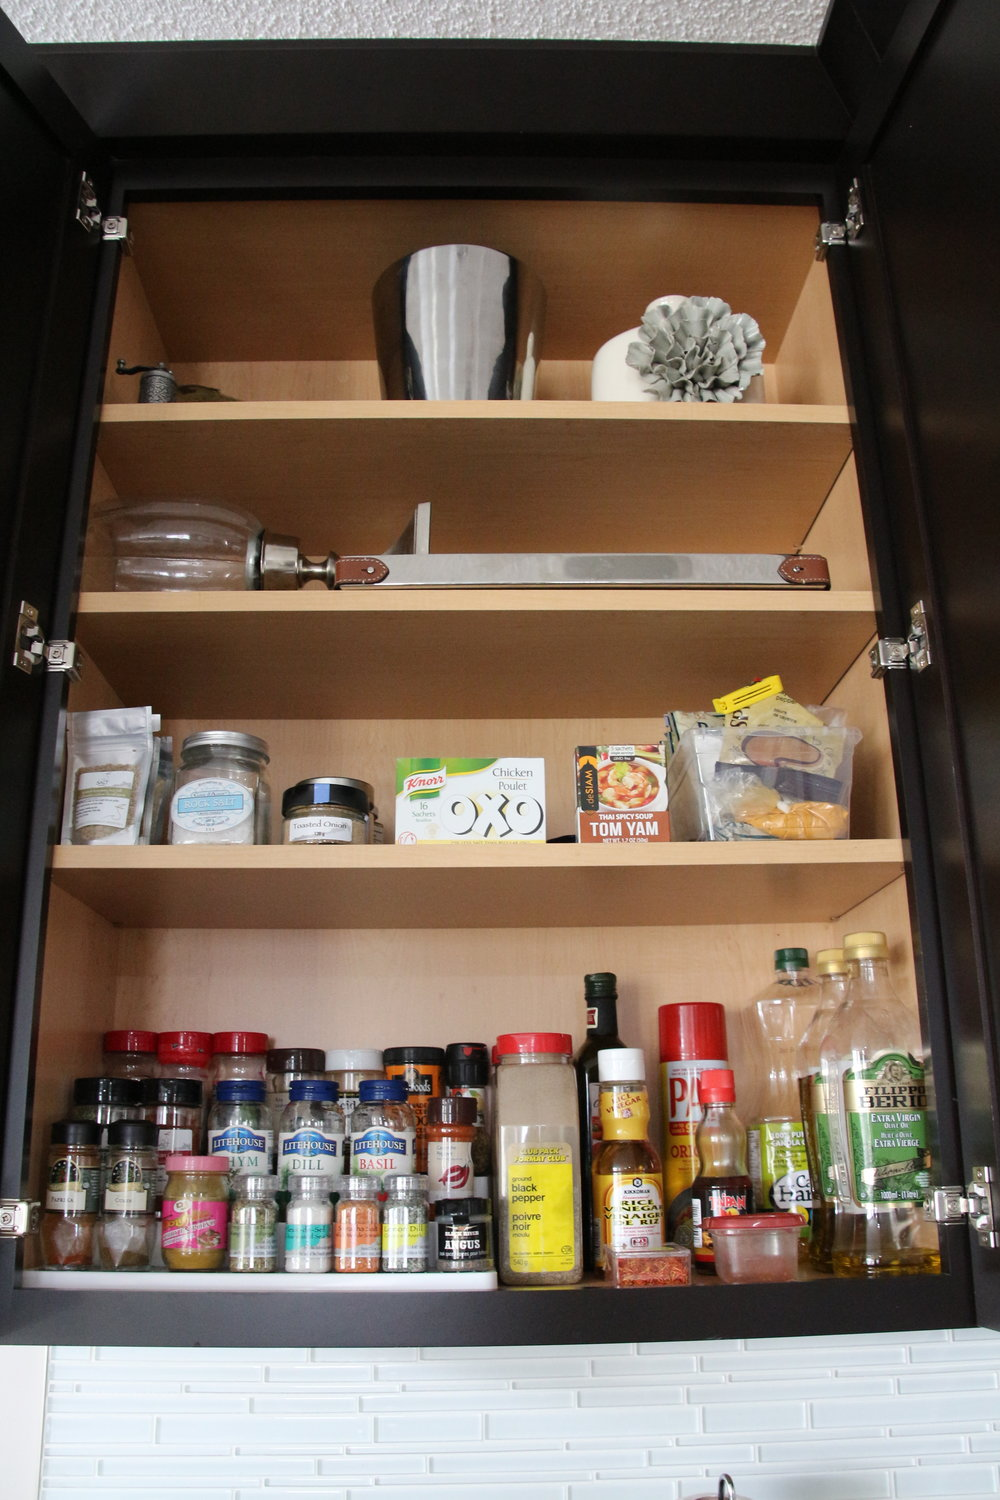 After-Under utilized kitchen cupboard